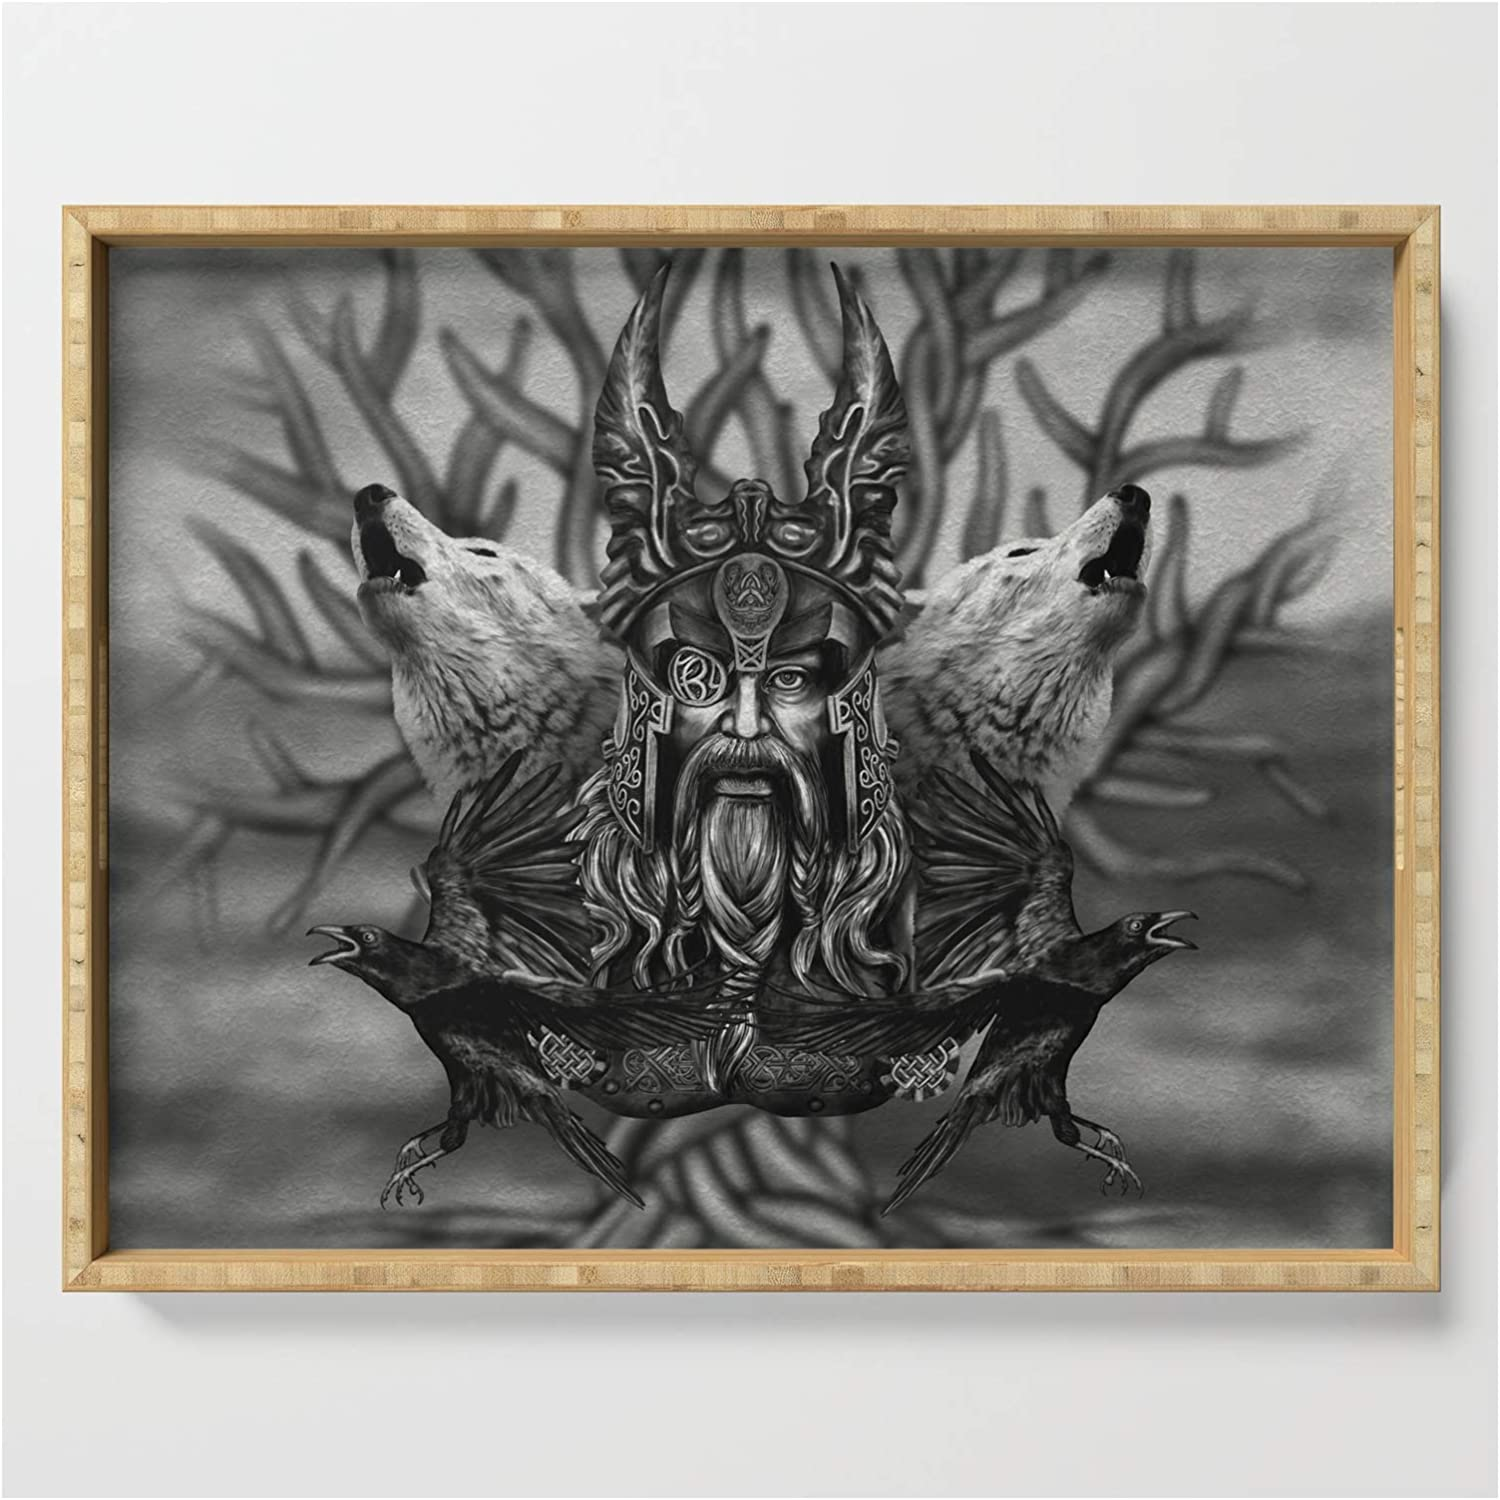 Odin New Free Shipping -all-father by Rare Creativemotions on Serving - 14